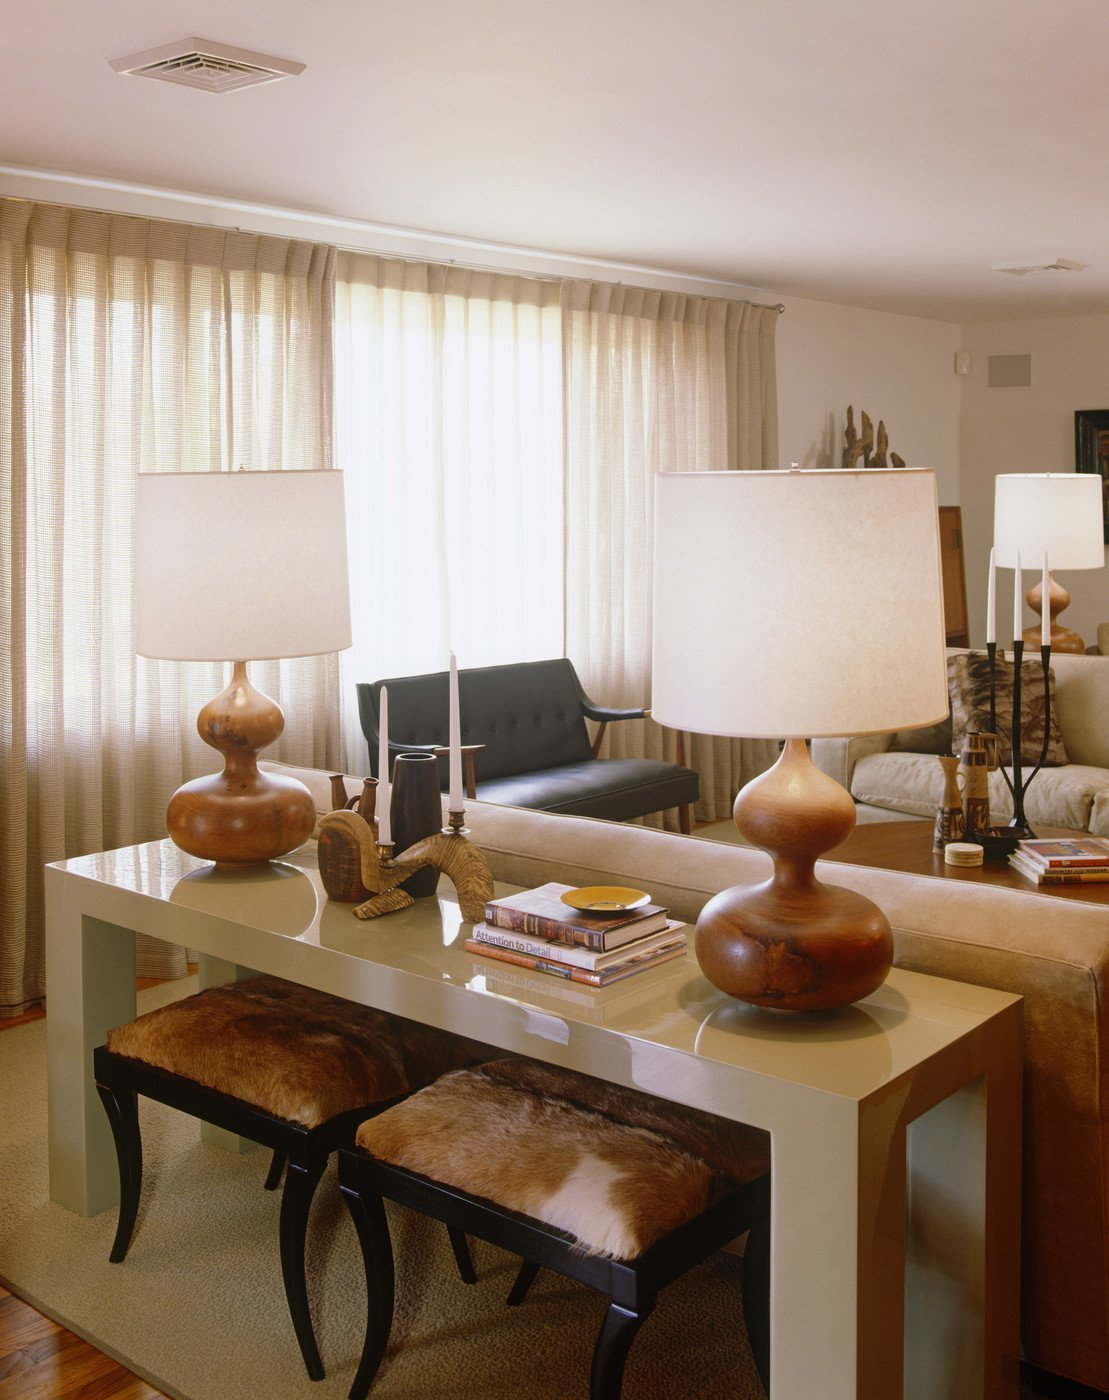 Beigh Modern Living Room Decorating Ideas Beige Modern Living Room Living Room Design Ideas Lonny